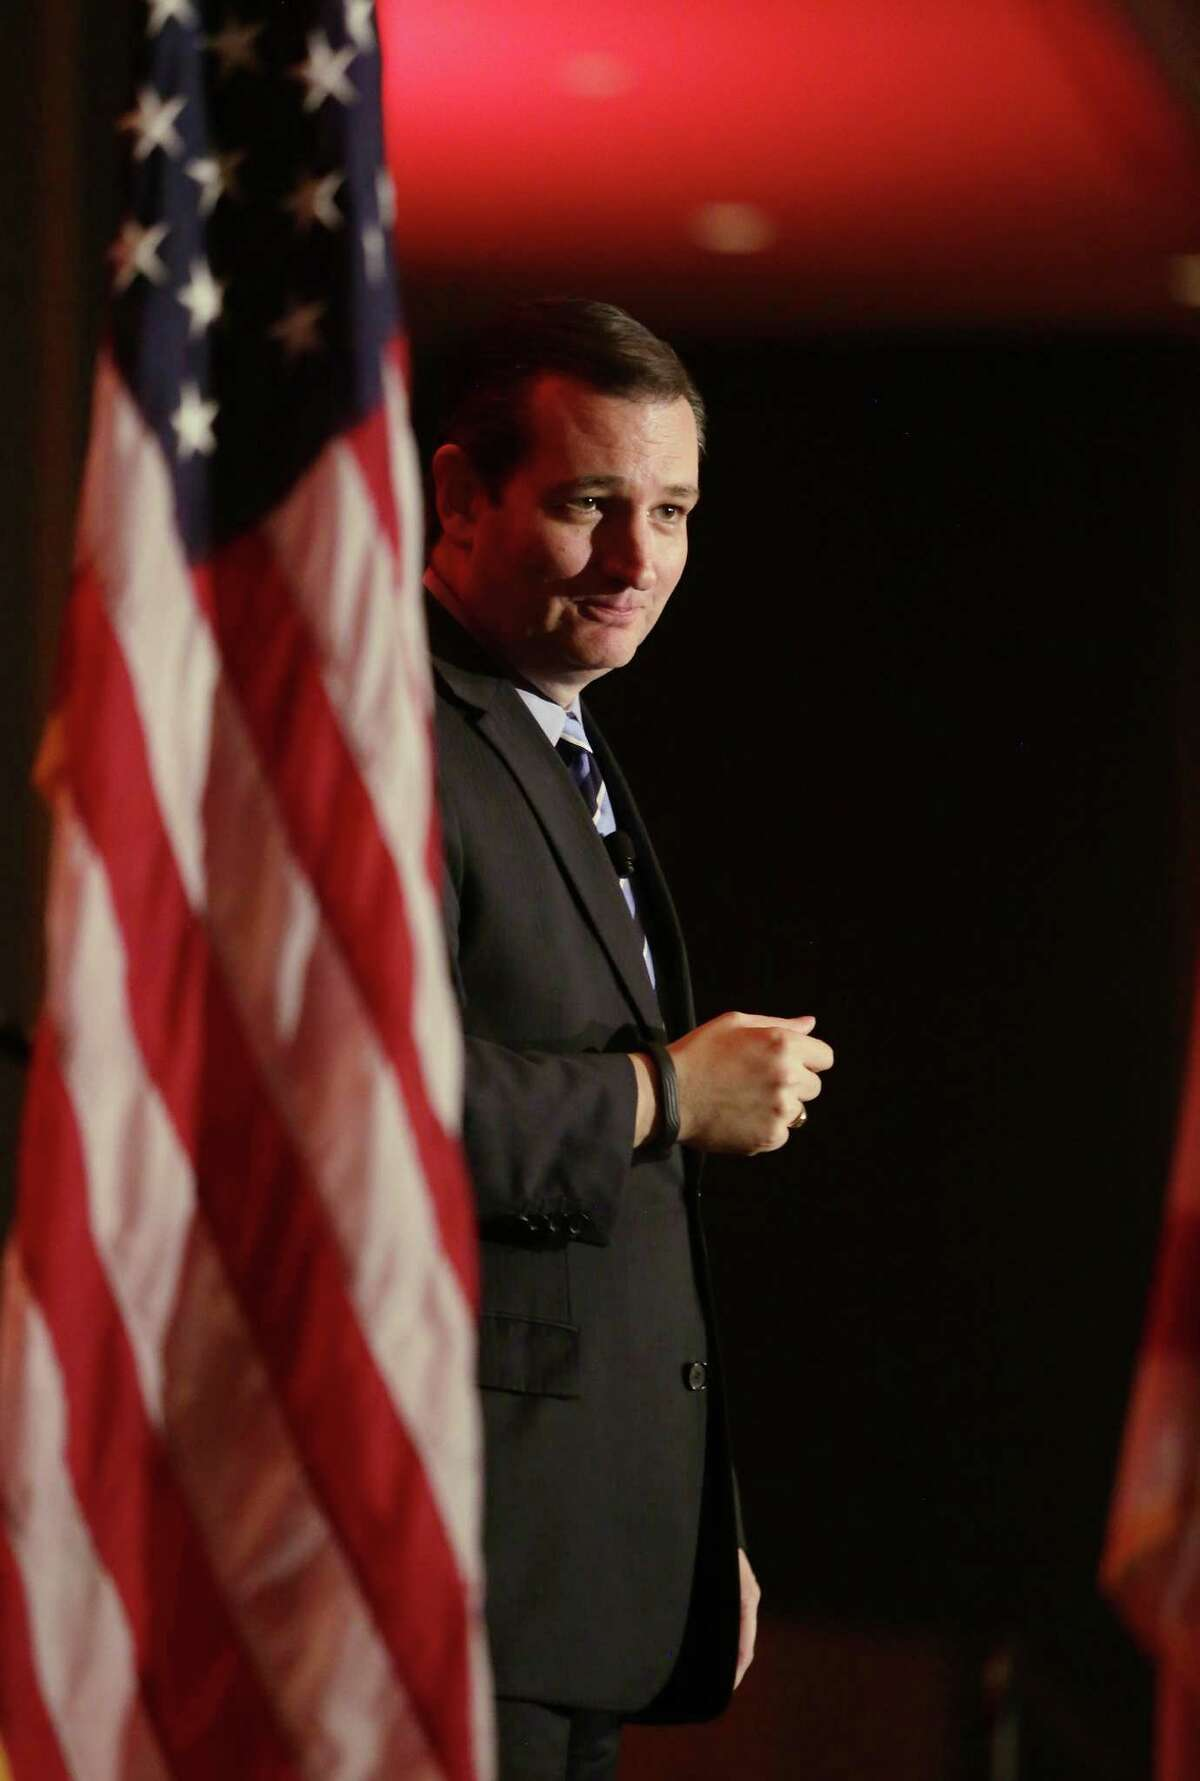 Sen. Ted Cruz showed off the populist chops that excite his GOP base in a visit to the Florida home ground of potential presidential rival Jeb Bush.